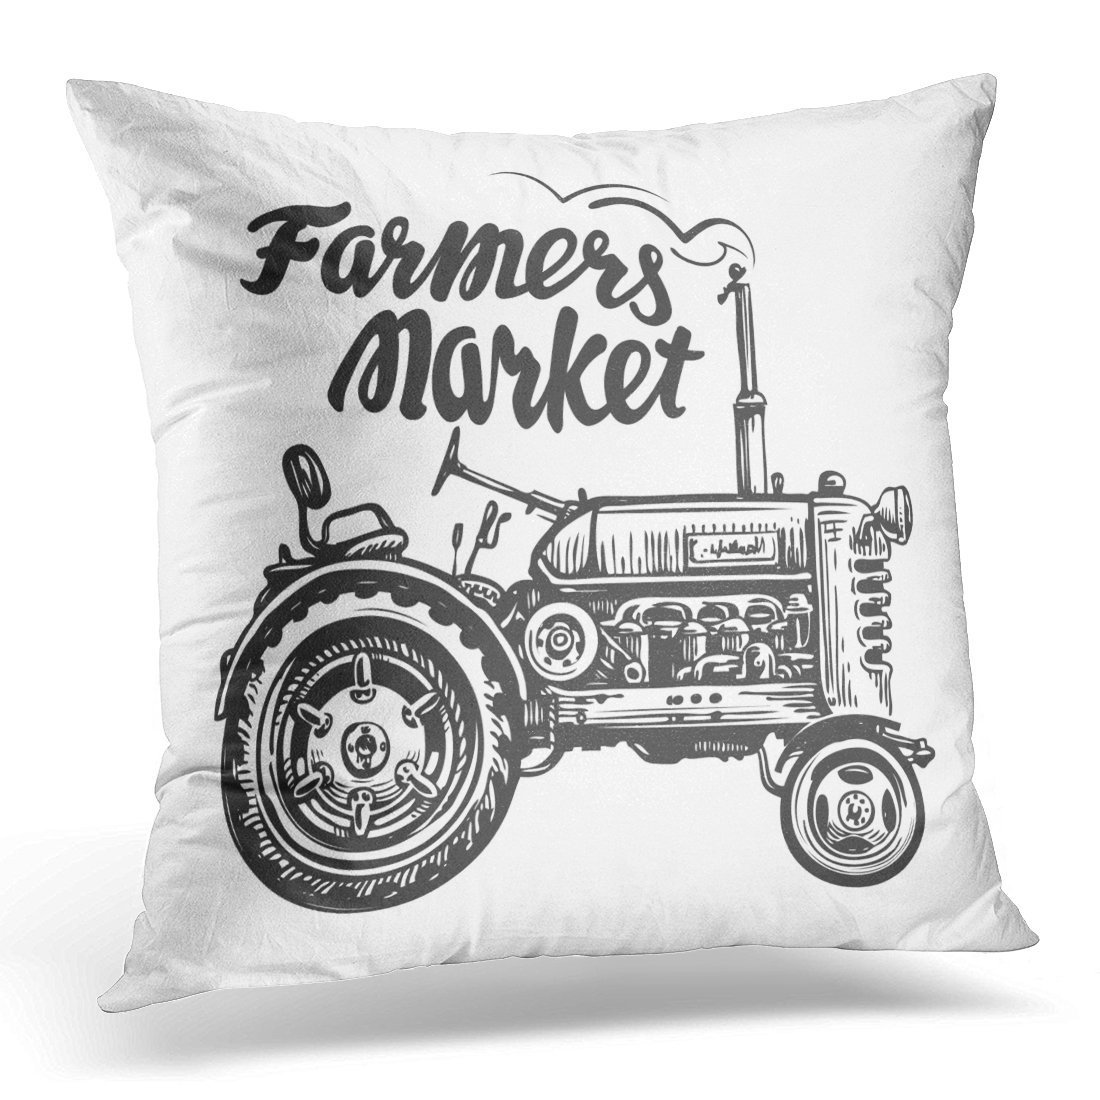 SPXUBZ Drawing Vintage Agricultural Tractor Sketch Farmers Market Lettering Technology Agribusiness Decorative Home Decor Square Indoor/Outdoor Pillowcase Size: 20x20 Inch(Two Sides)